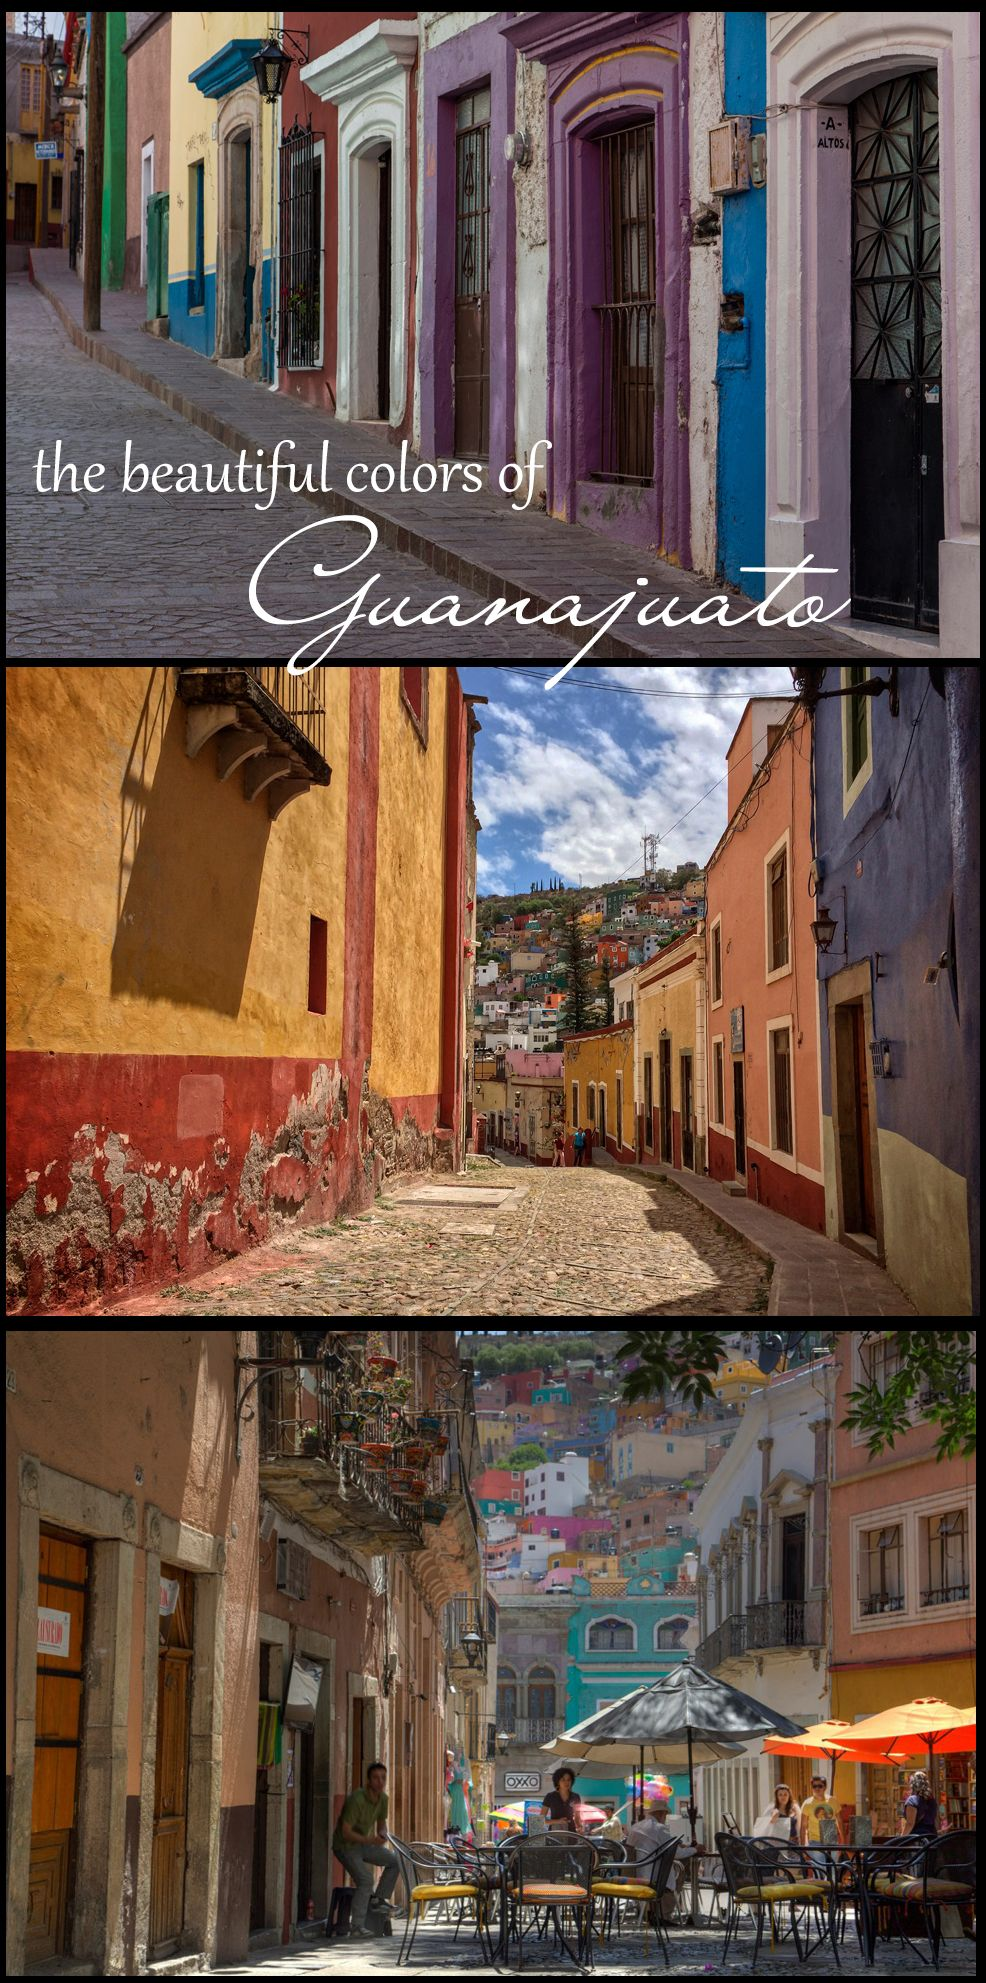 On The Streets Of Guanajuato Mexico Hecktic Travels Mexico Travel Guanajuato Visit Mexico